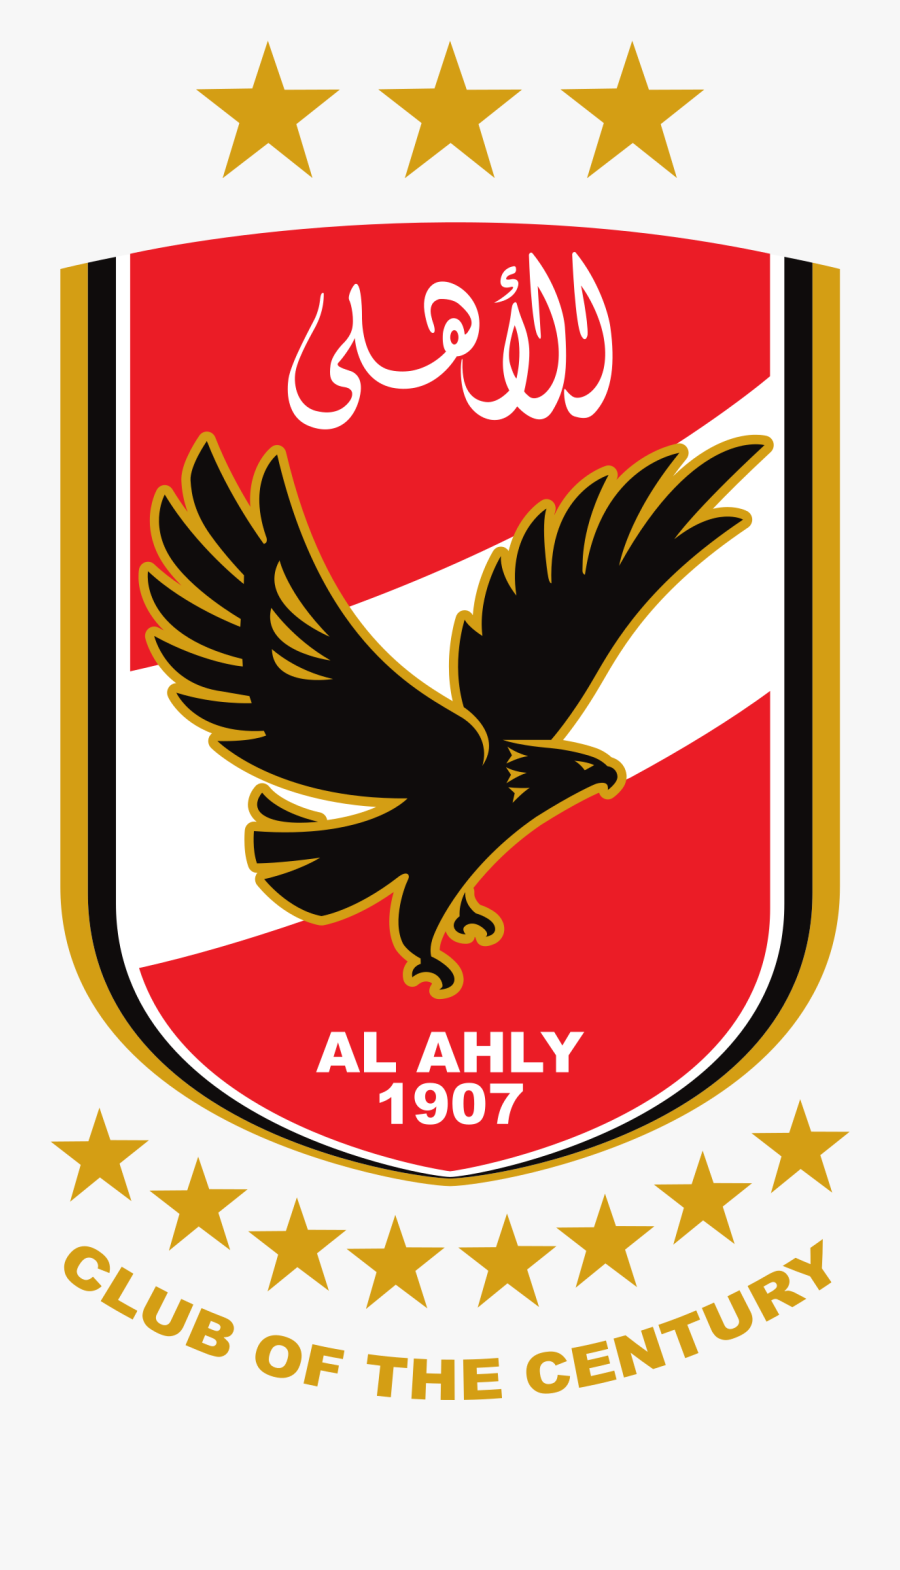 Alahly Logo Dream League Soccer 2019, Transparent Clipart